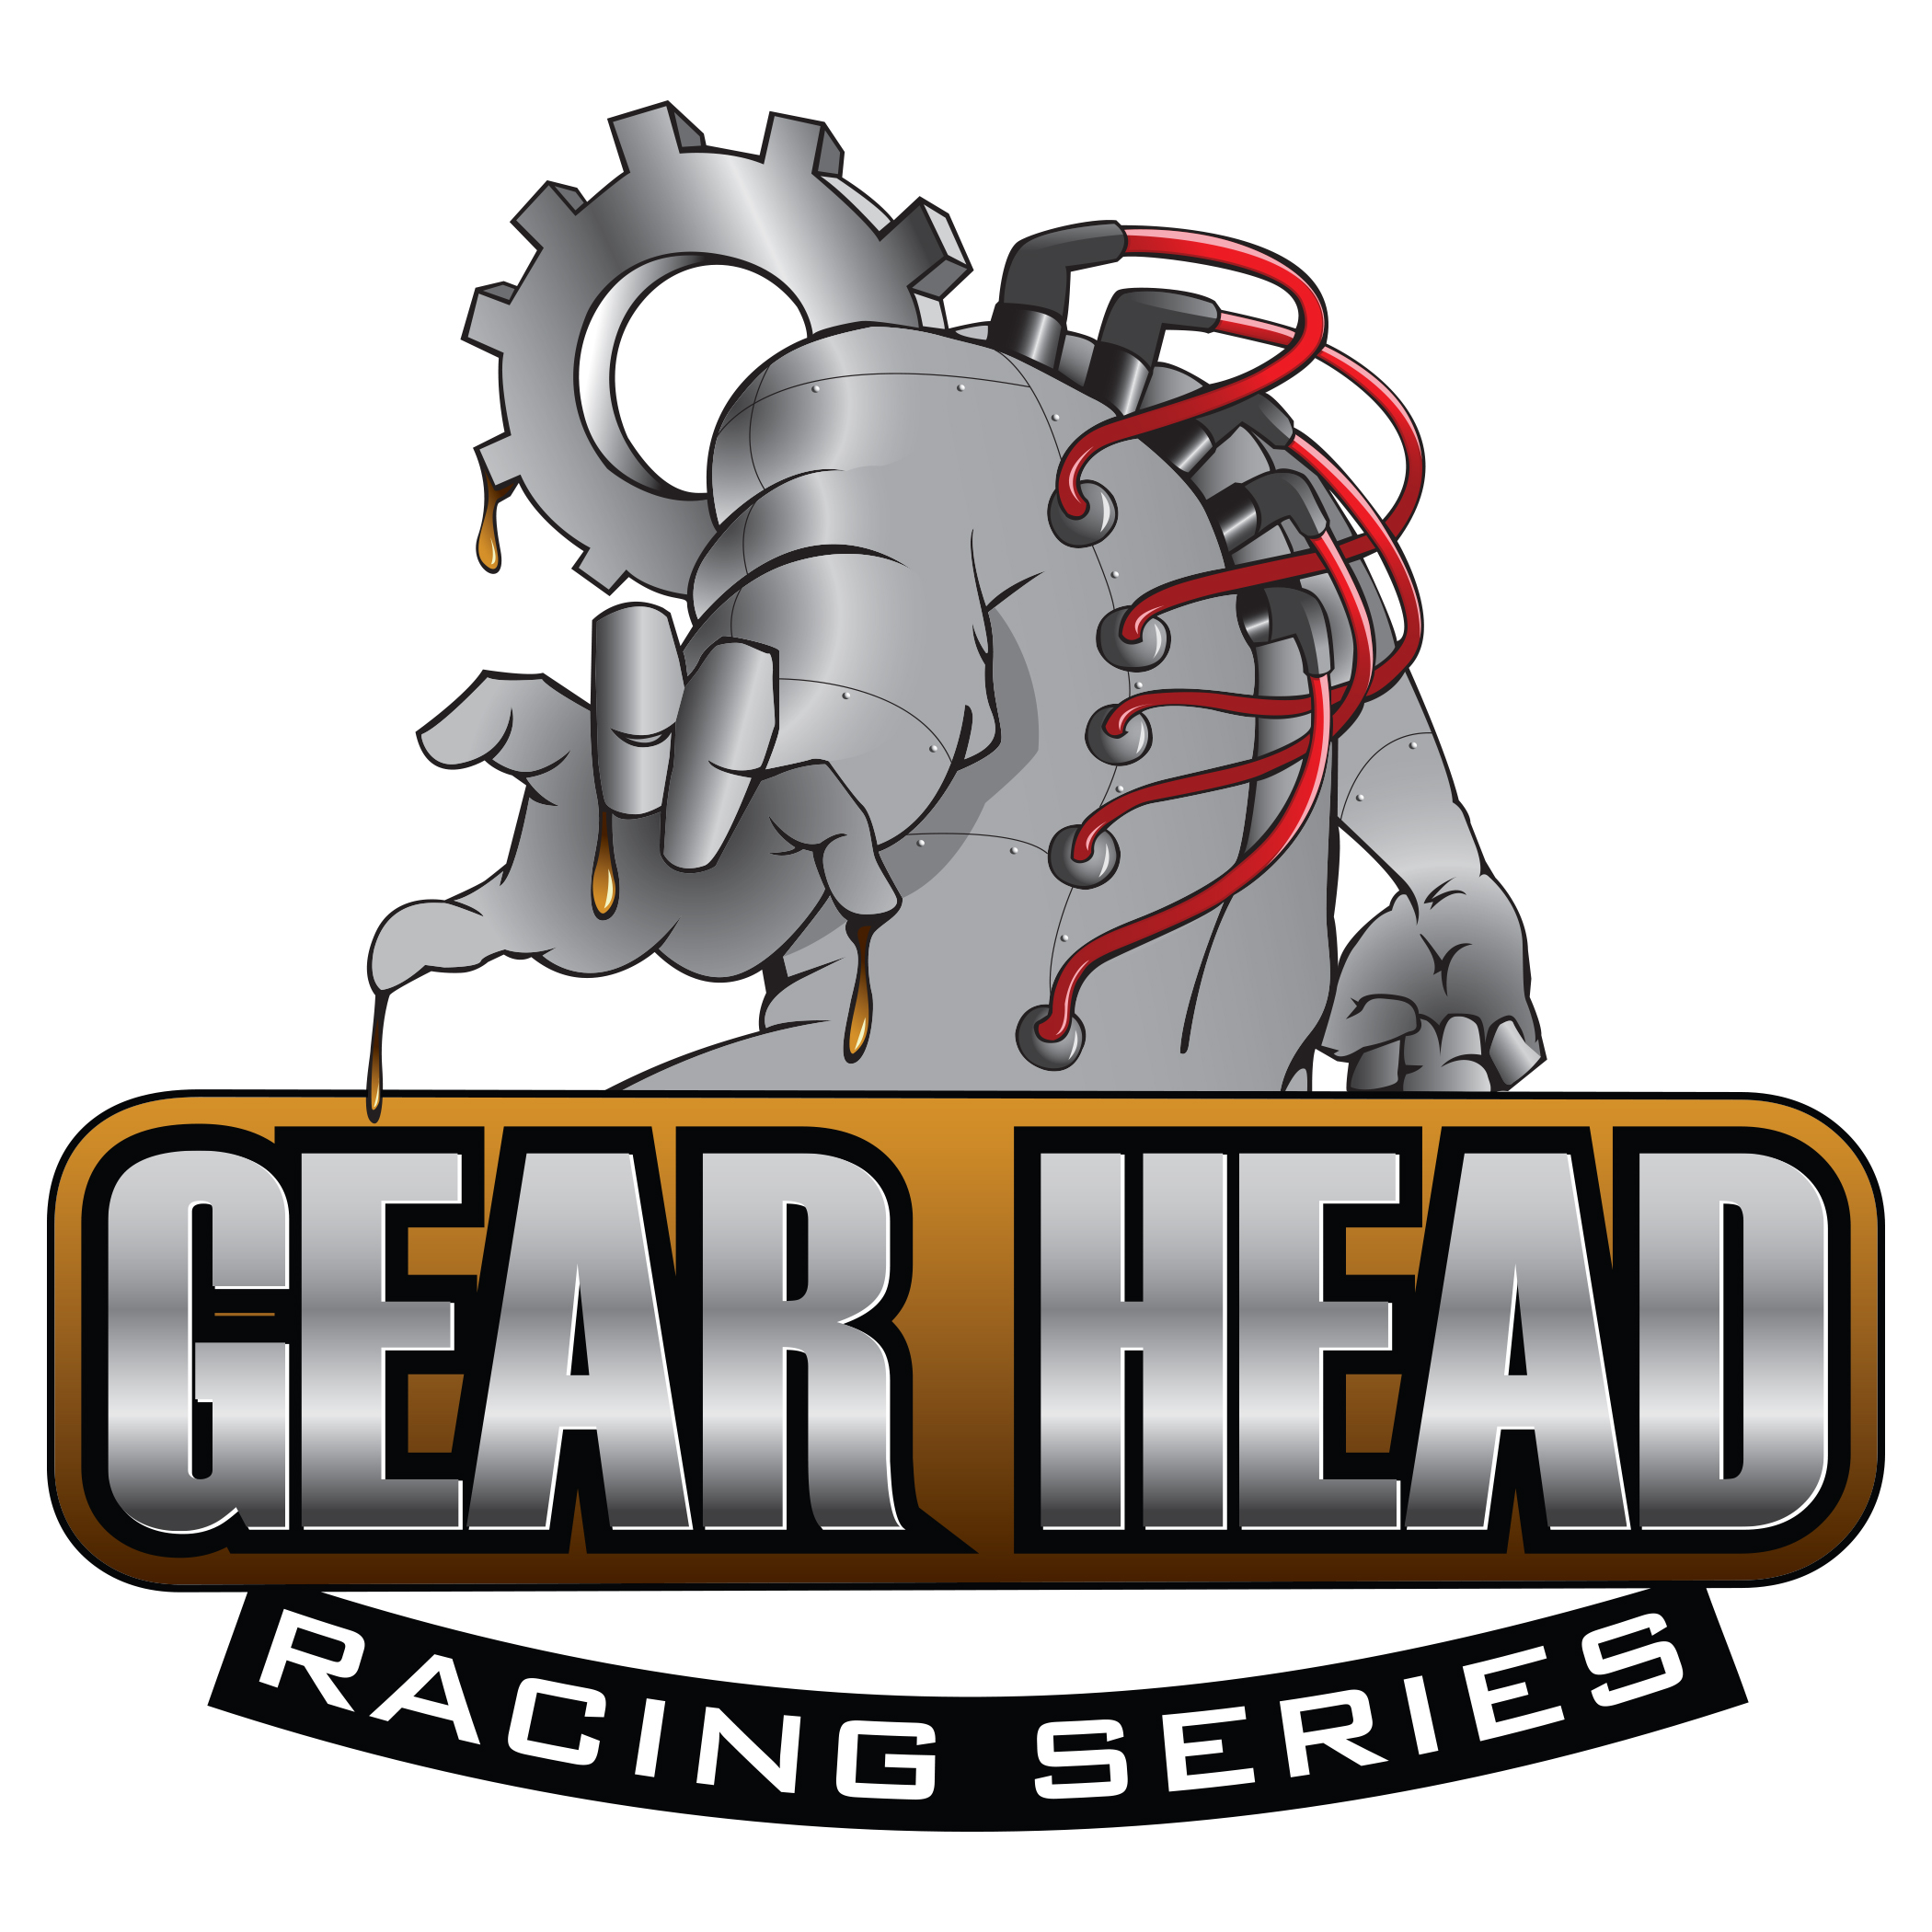 Gear Head Racing Series-2.jpg